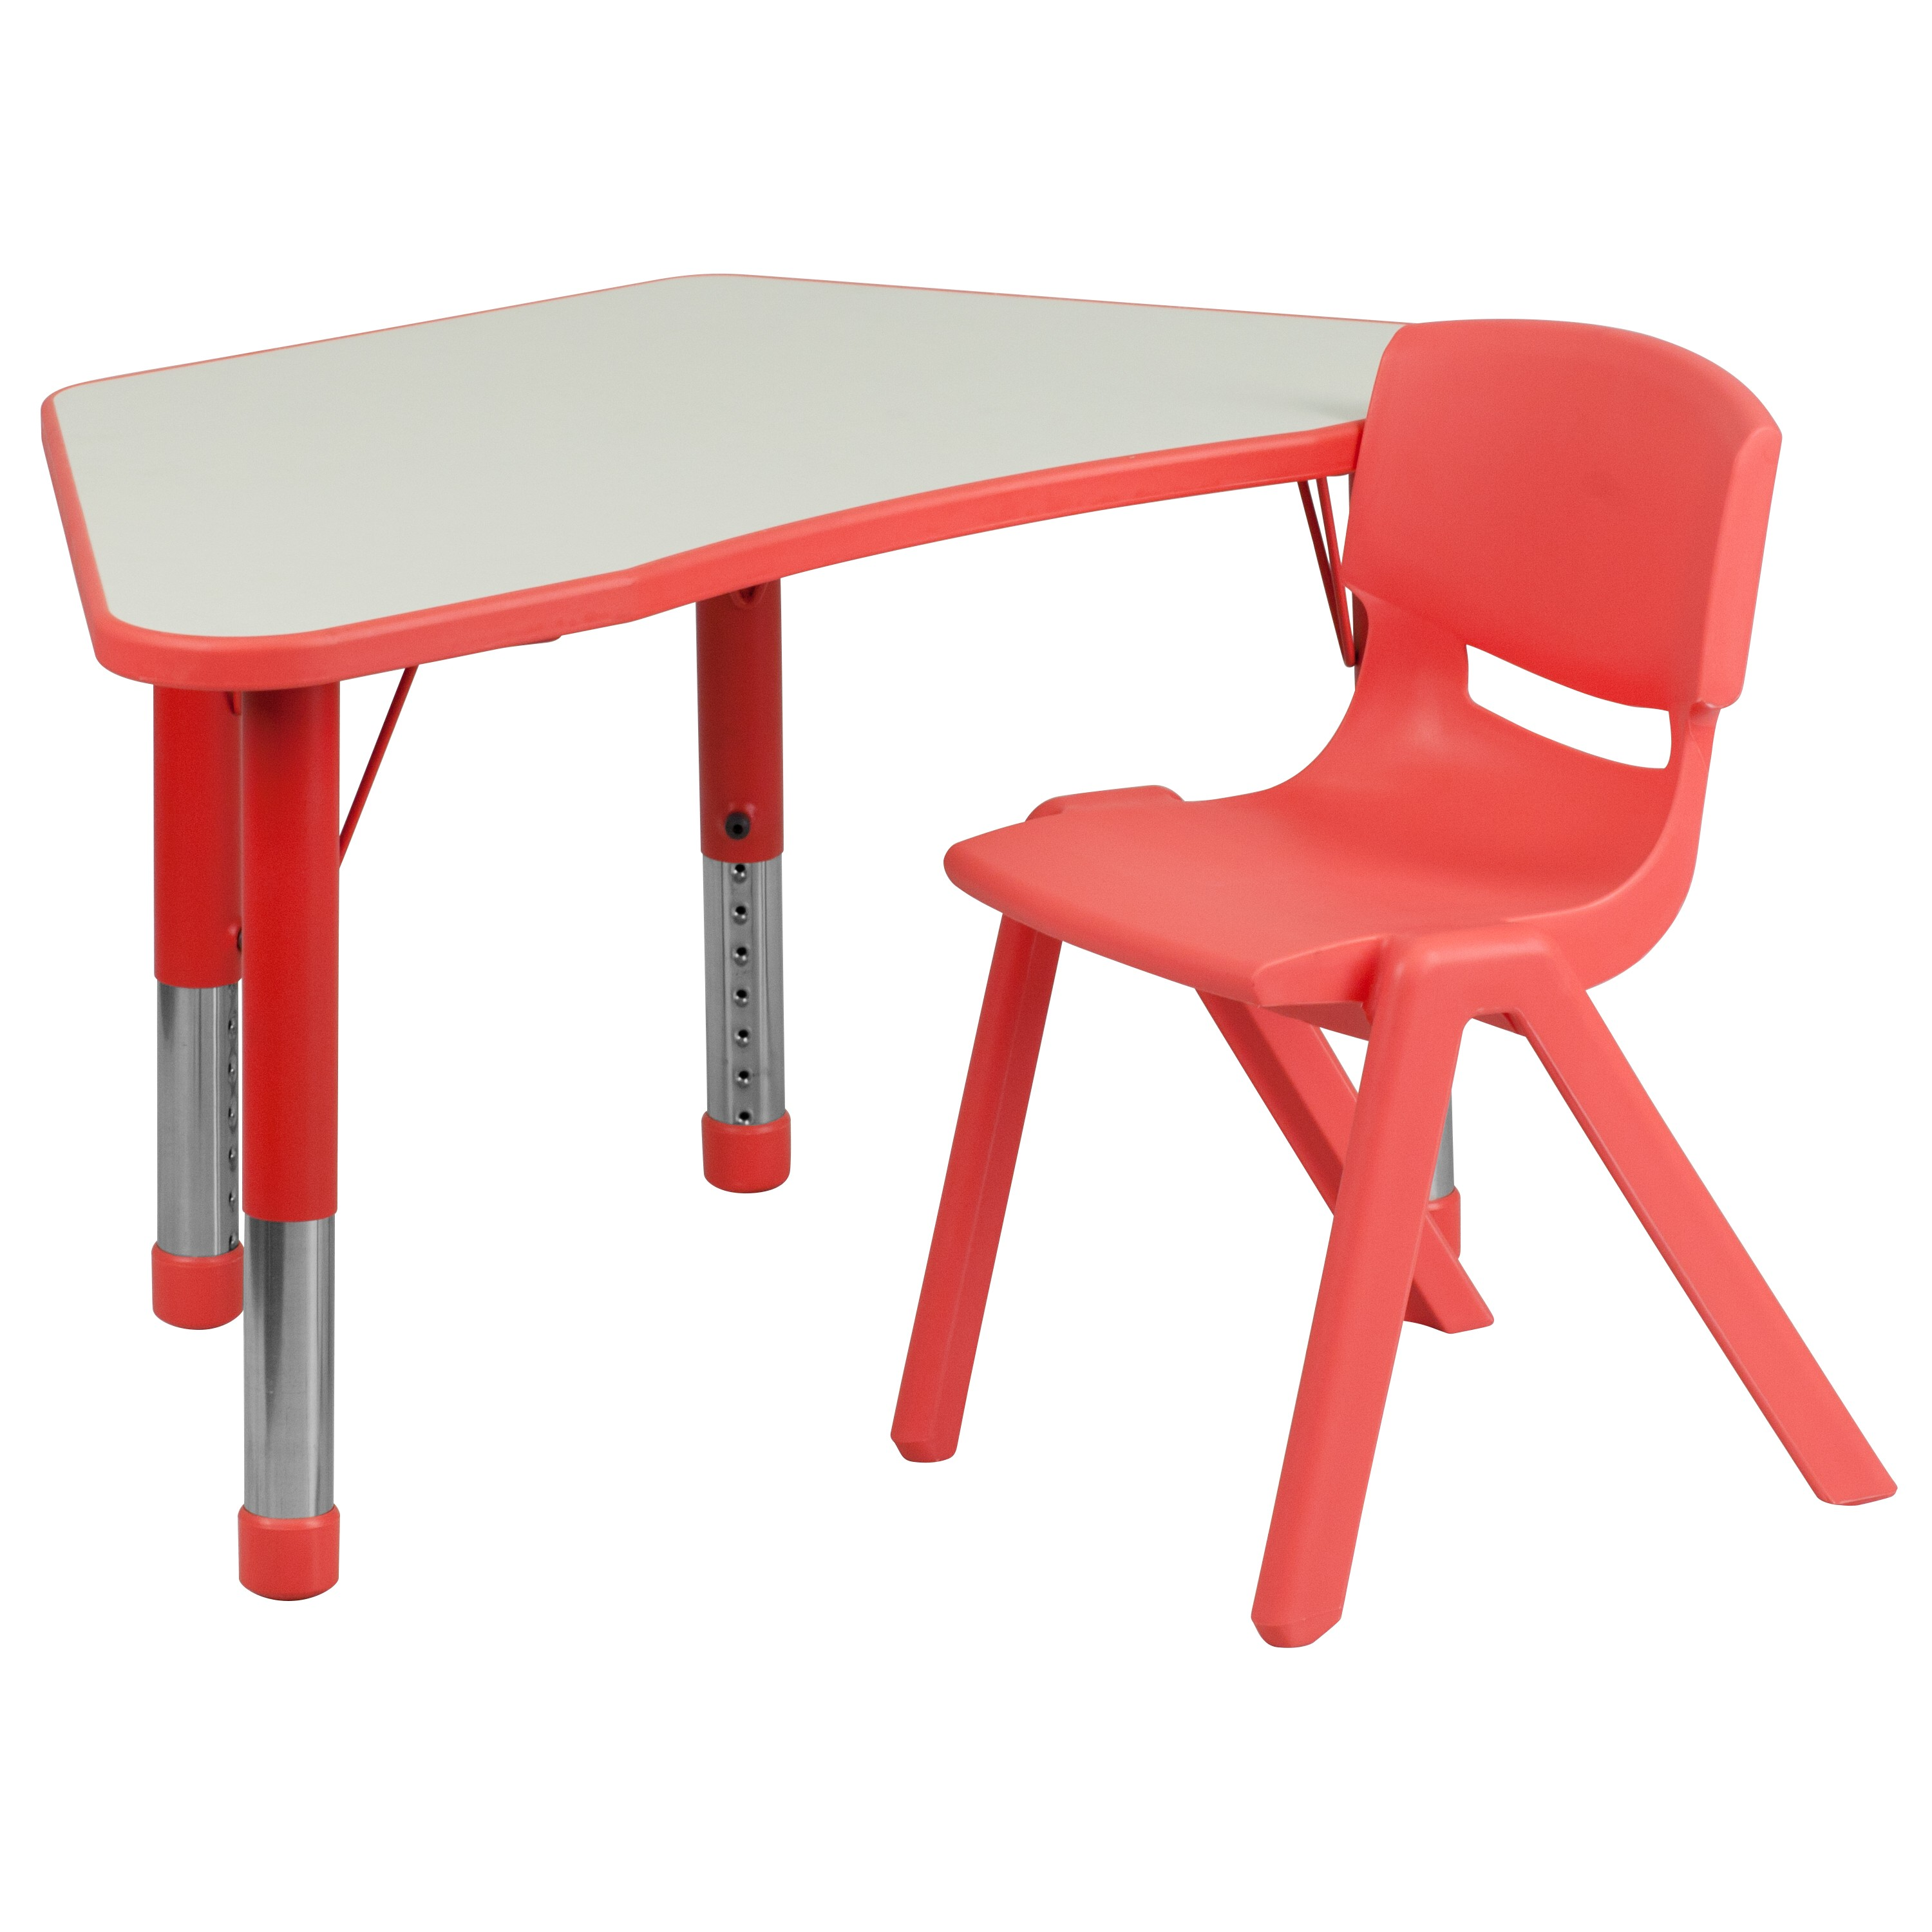 MFO Red Trapezoid Plastic Activity Table Configuration with 1